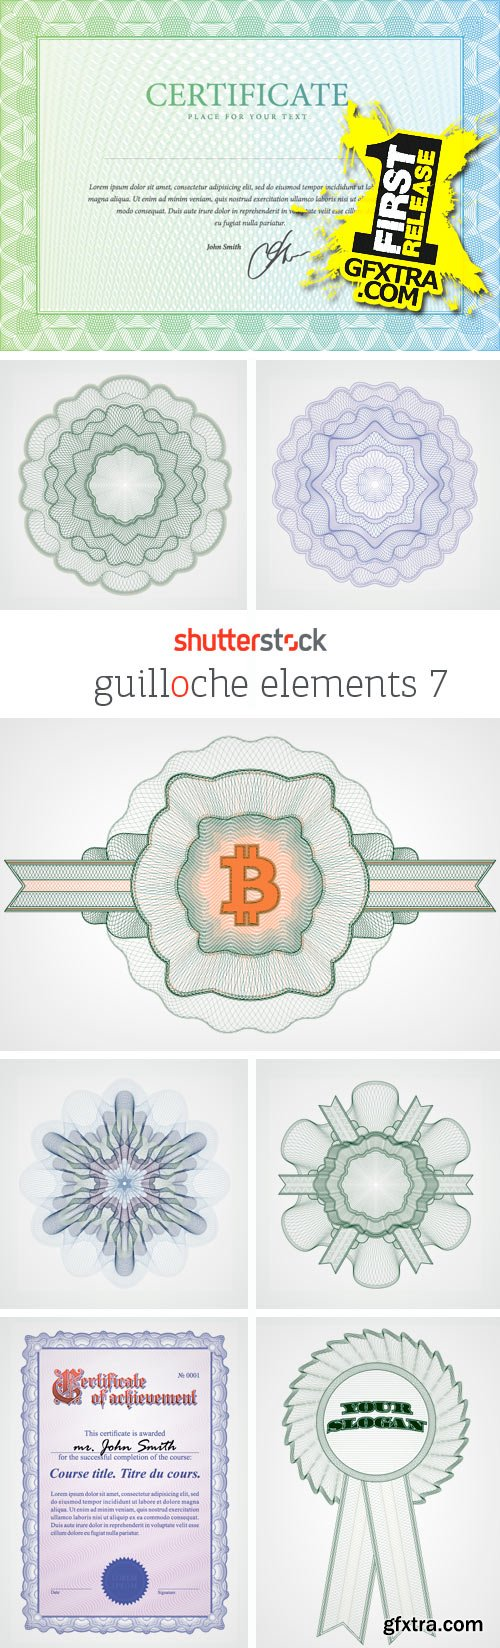 Amazing SS - Guilloche Elements 7, 25xEPS